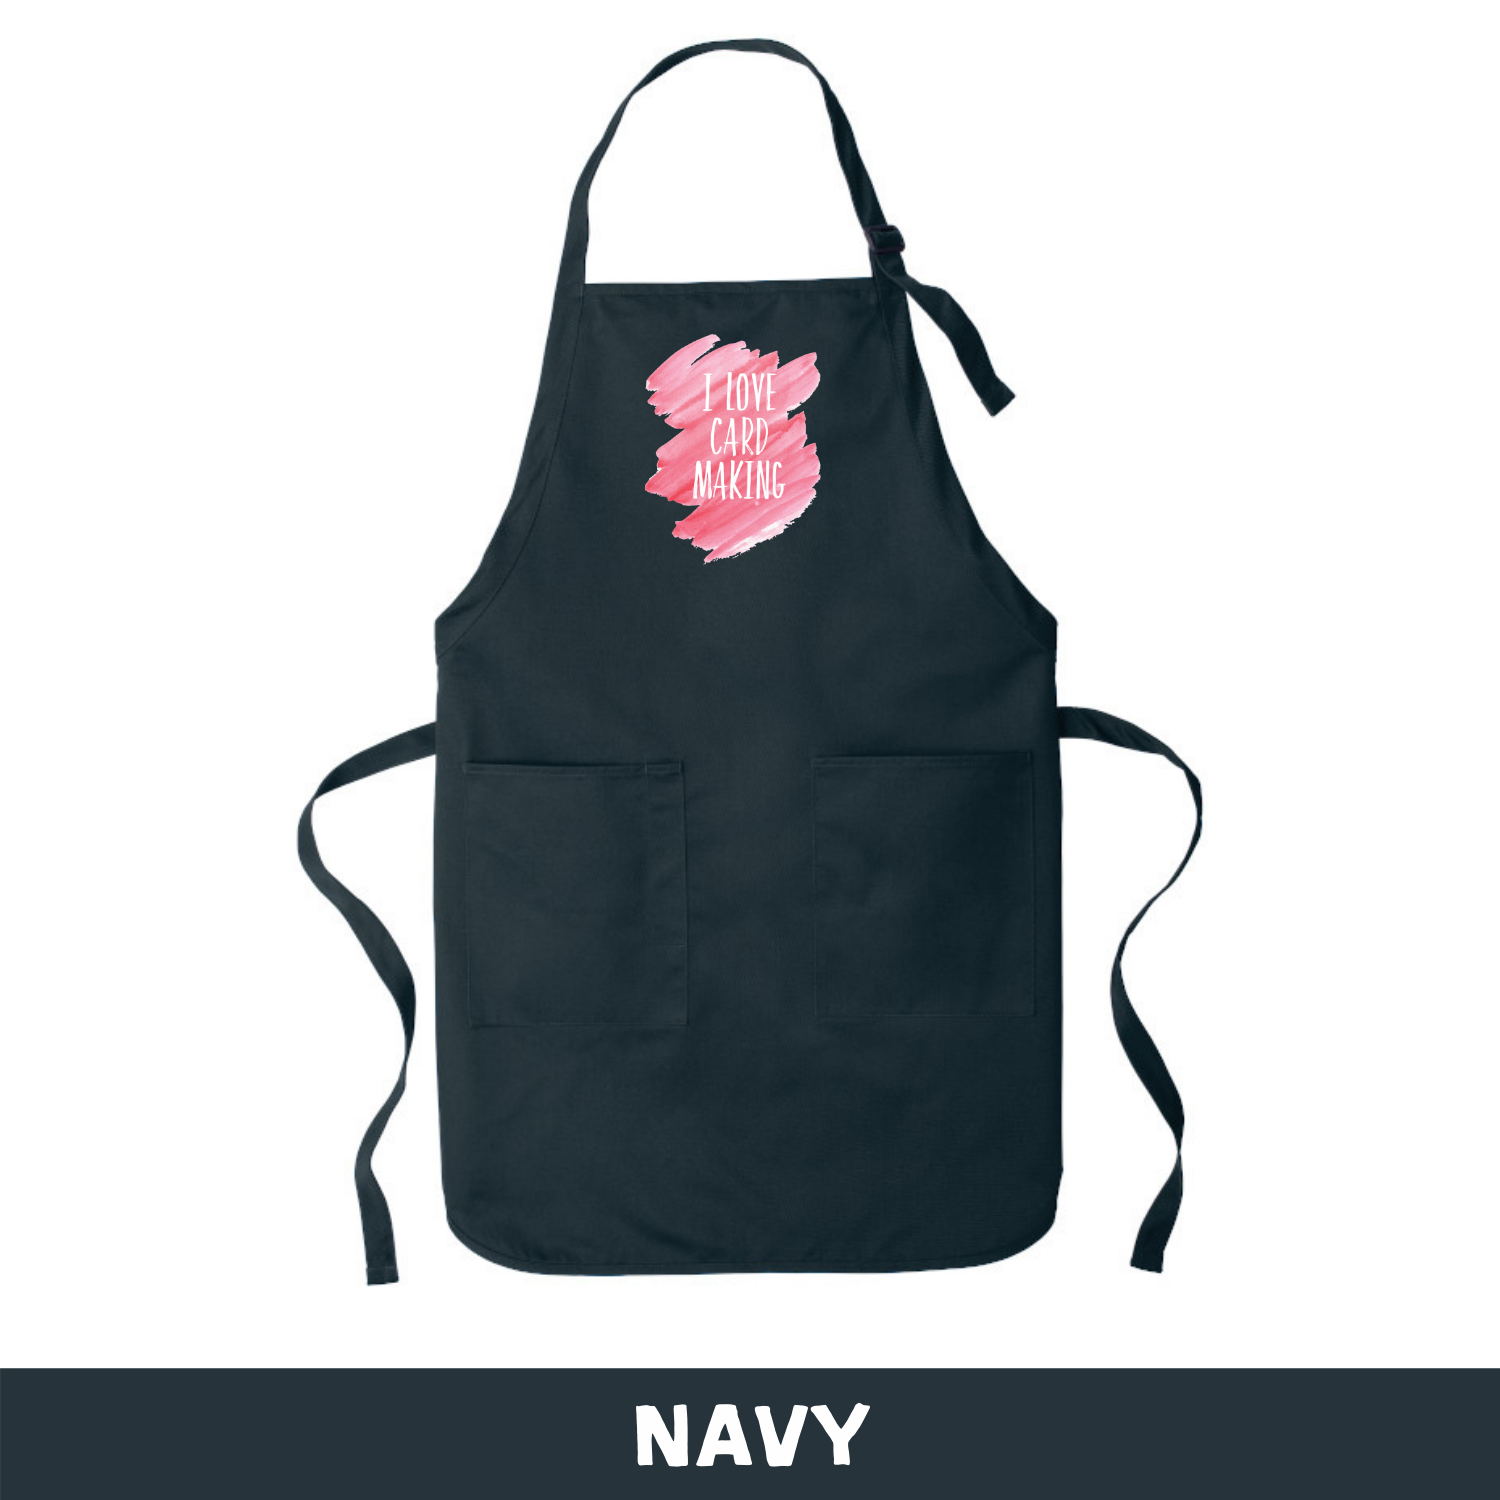 Navy - Apron - I Love Cardmaking